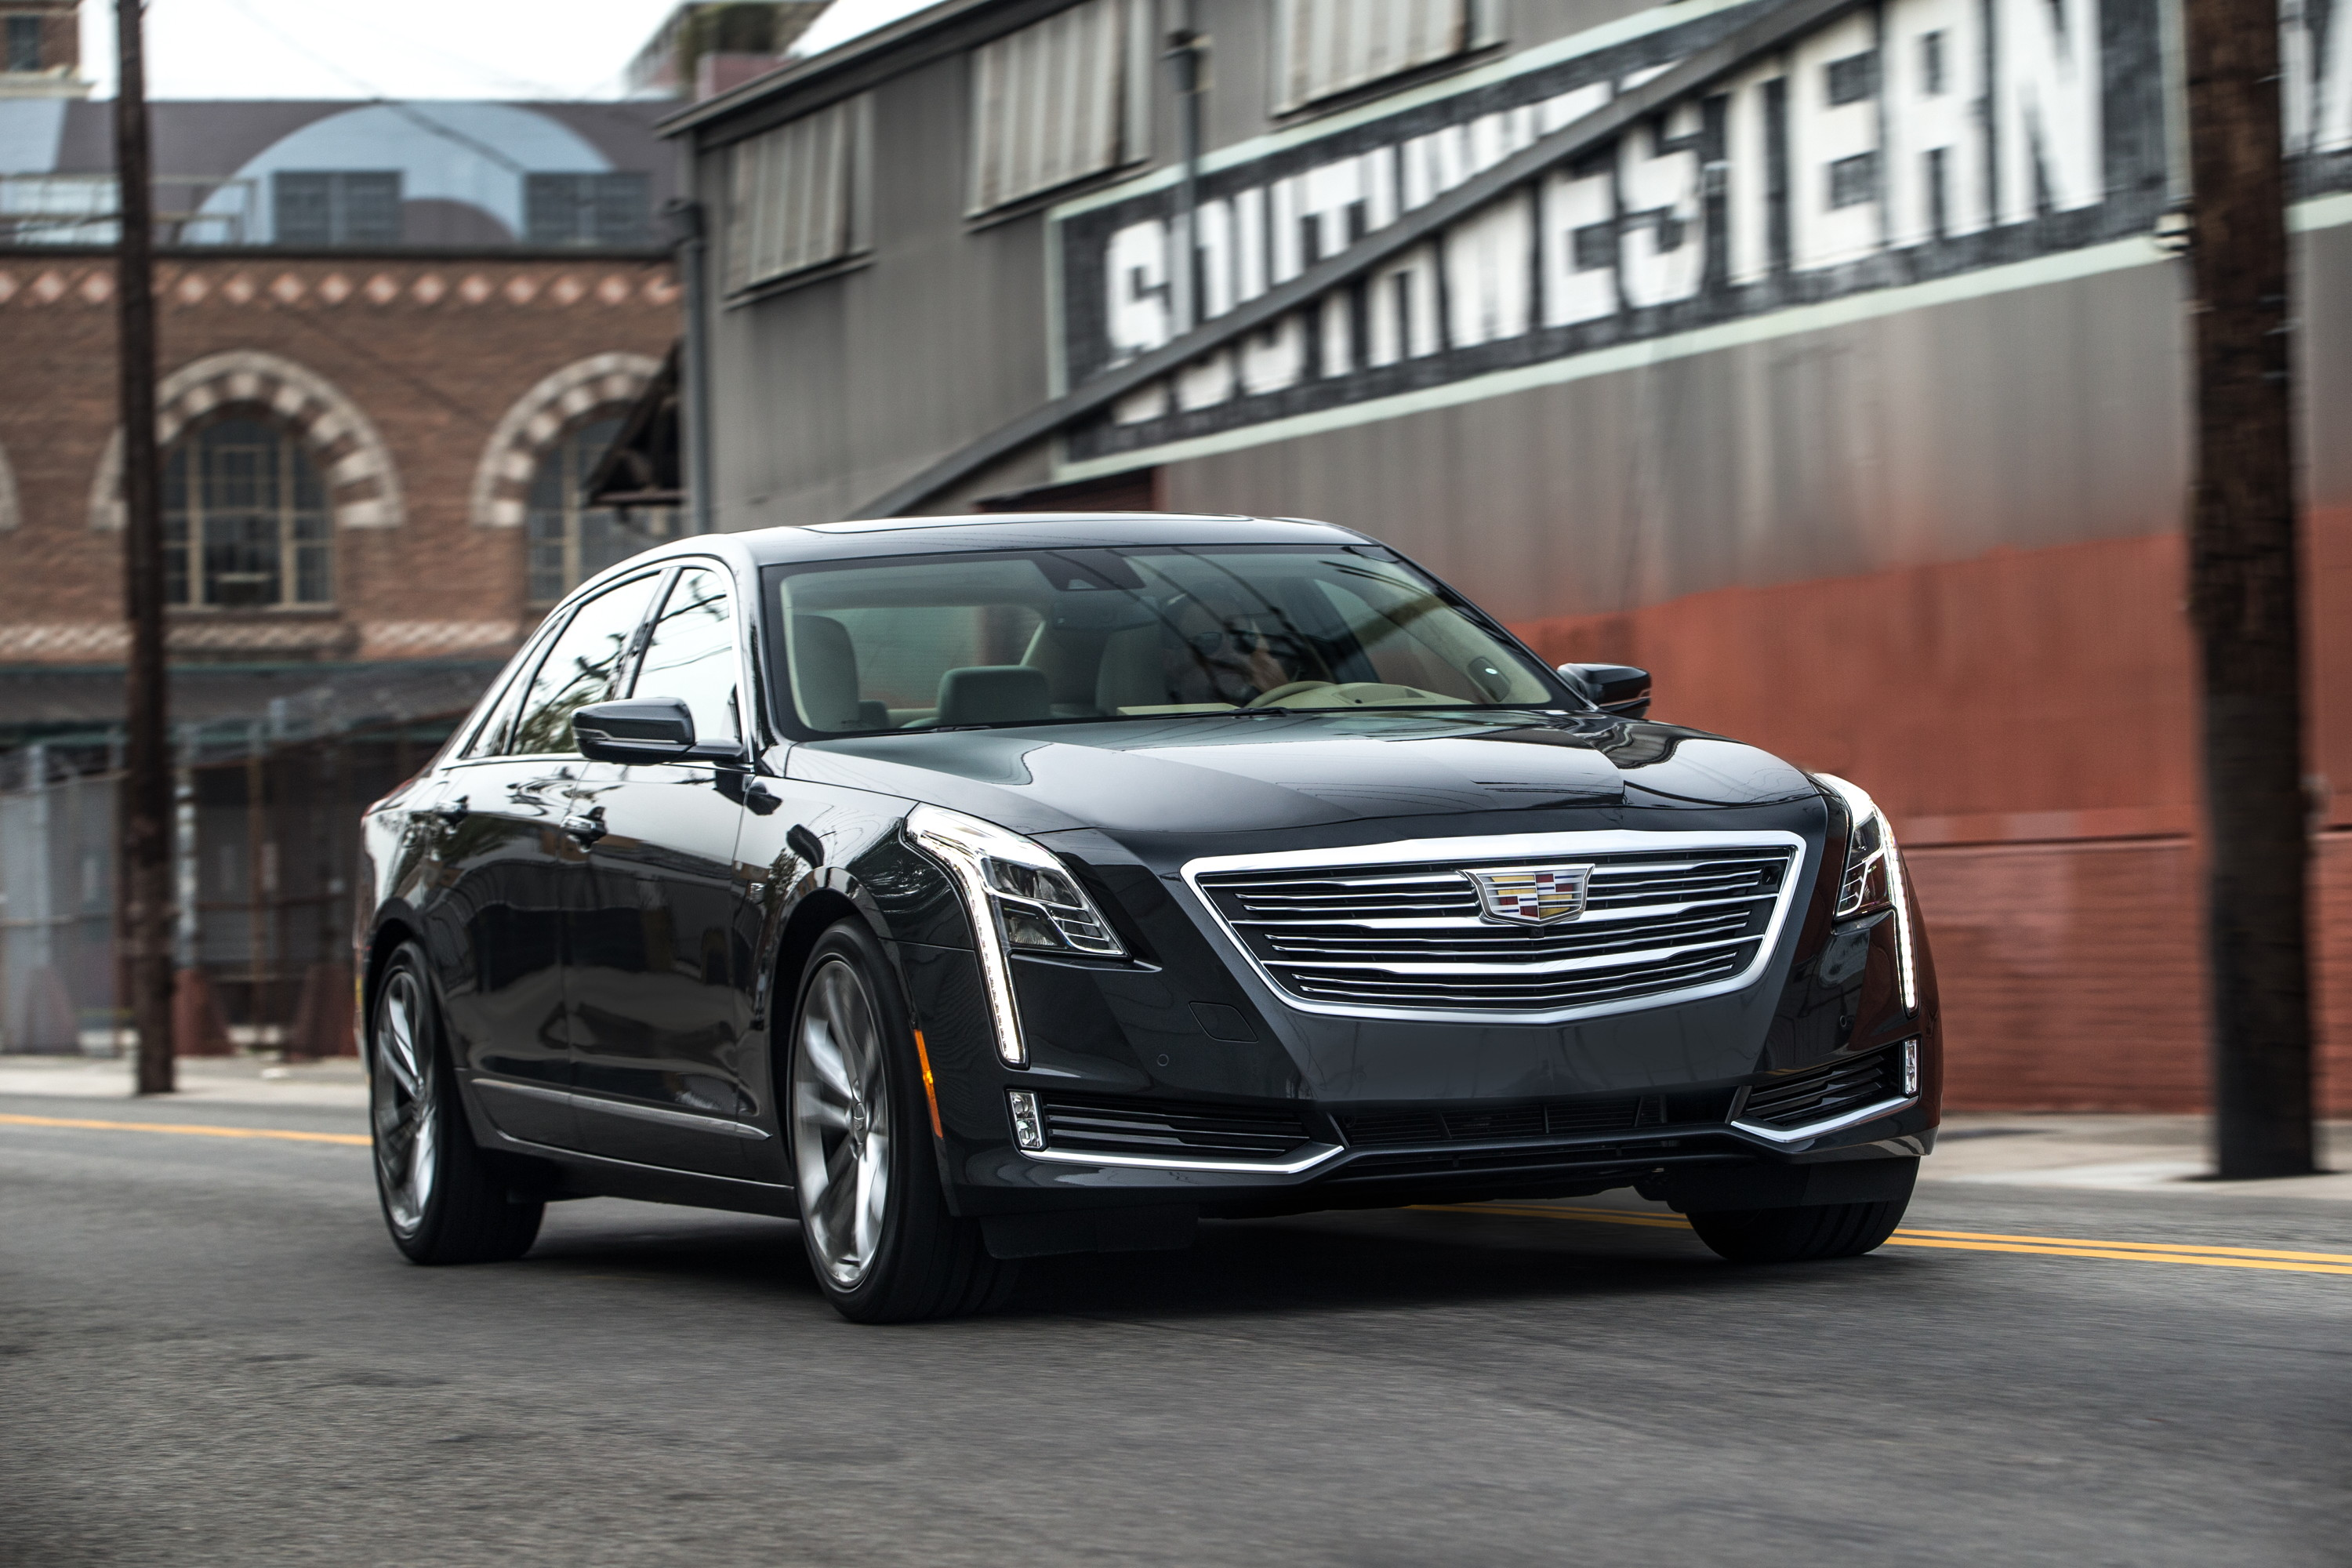 2017 Cadillac Ct6 Plug In Hybrid Coming With 449 Hp 37 Mile Electric Range